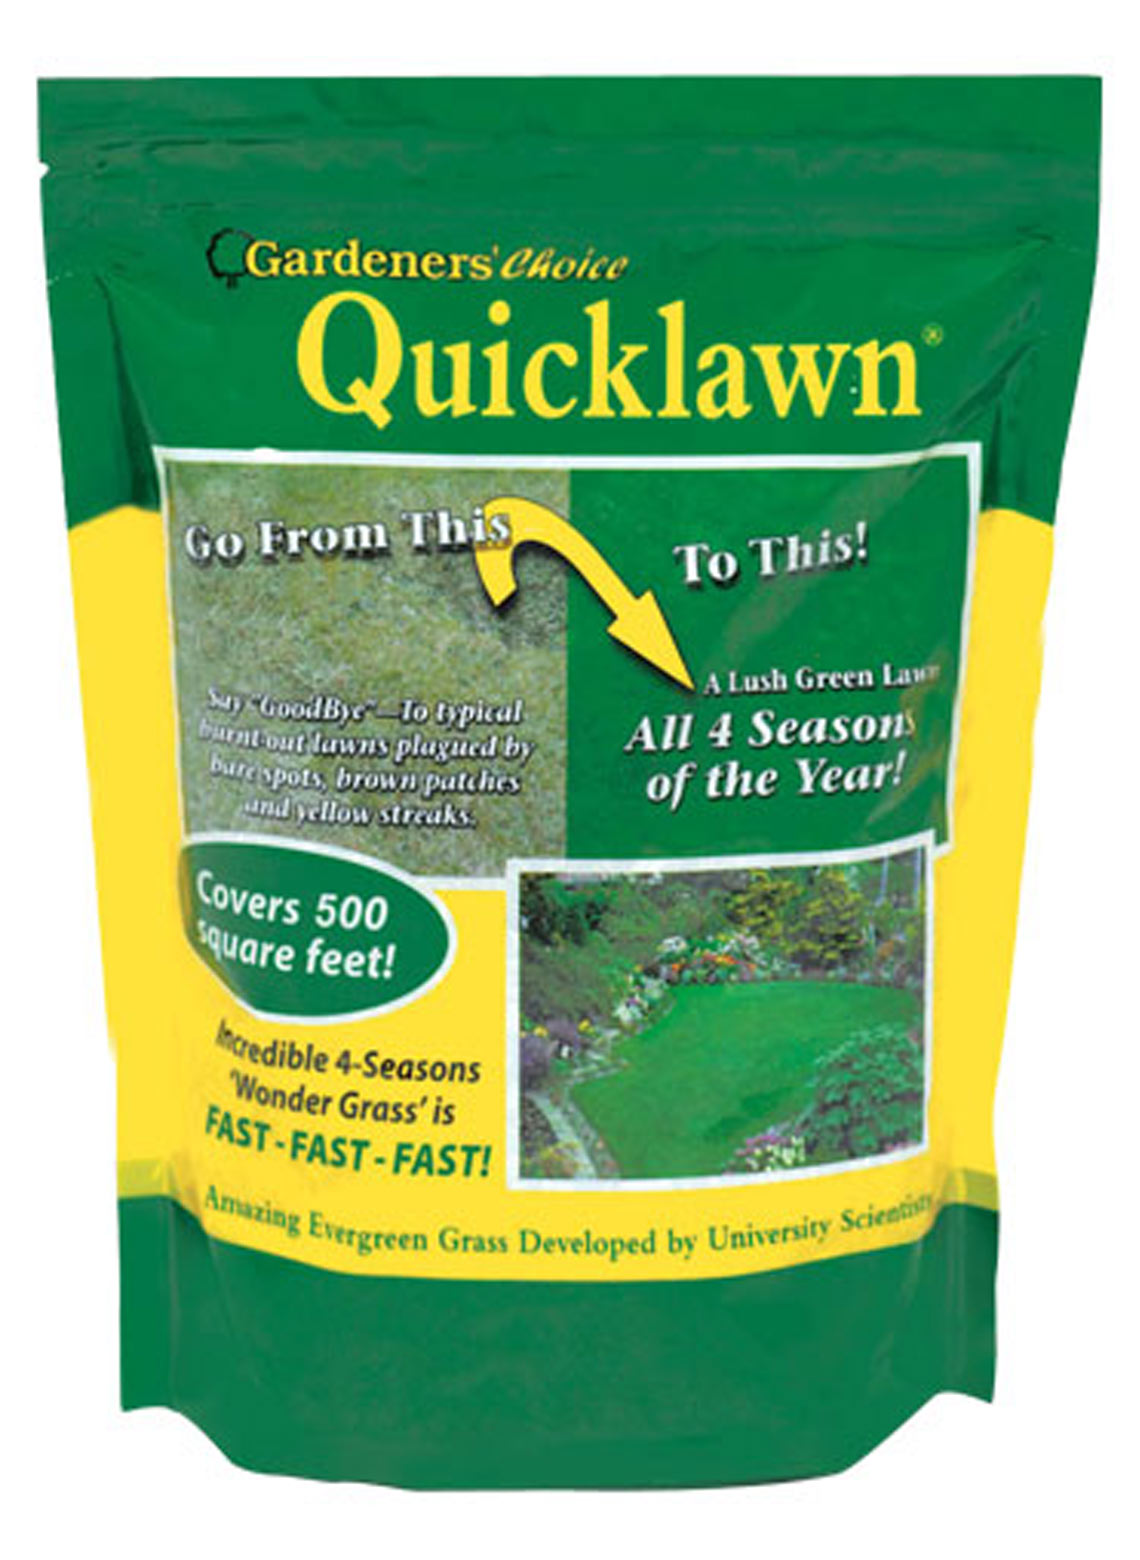 Quicklawn Lawn Seed